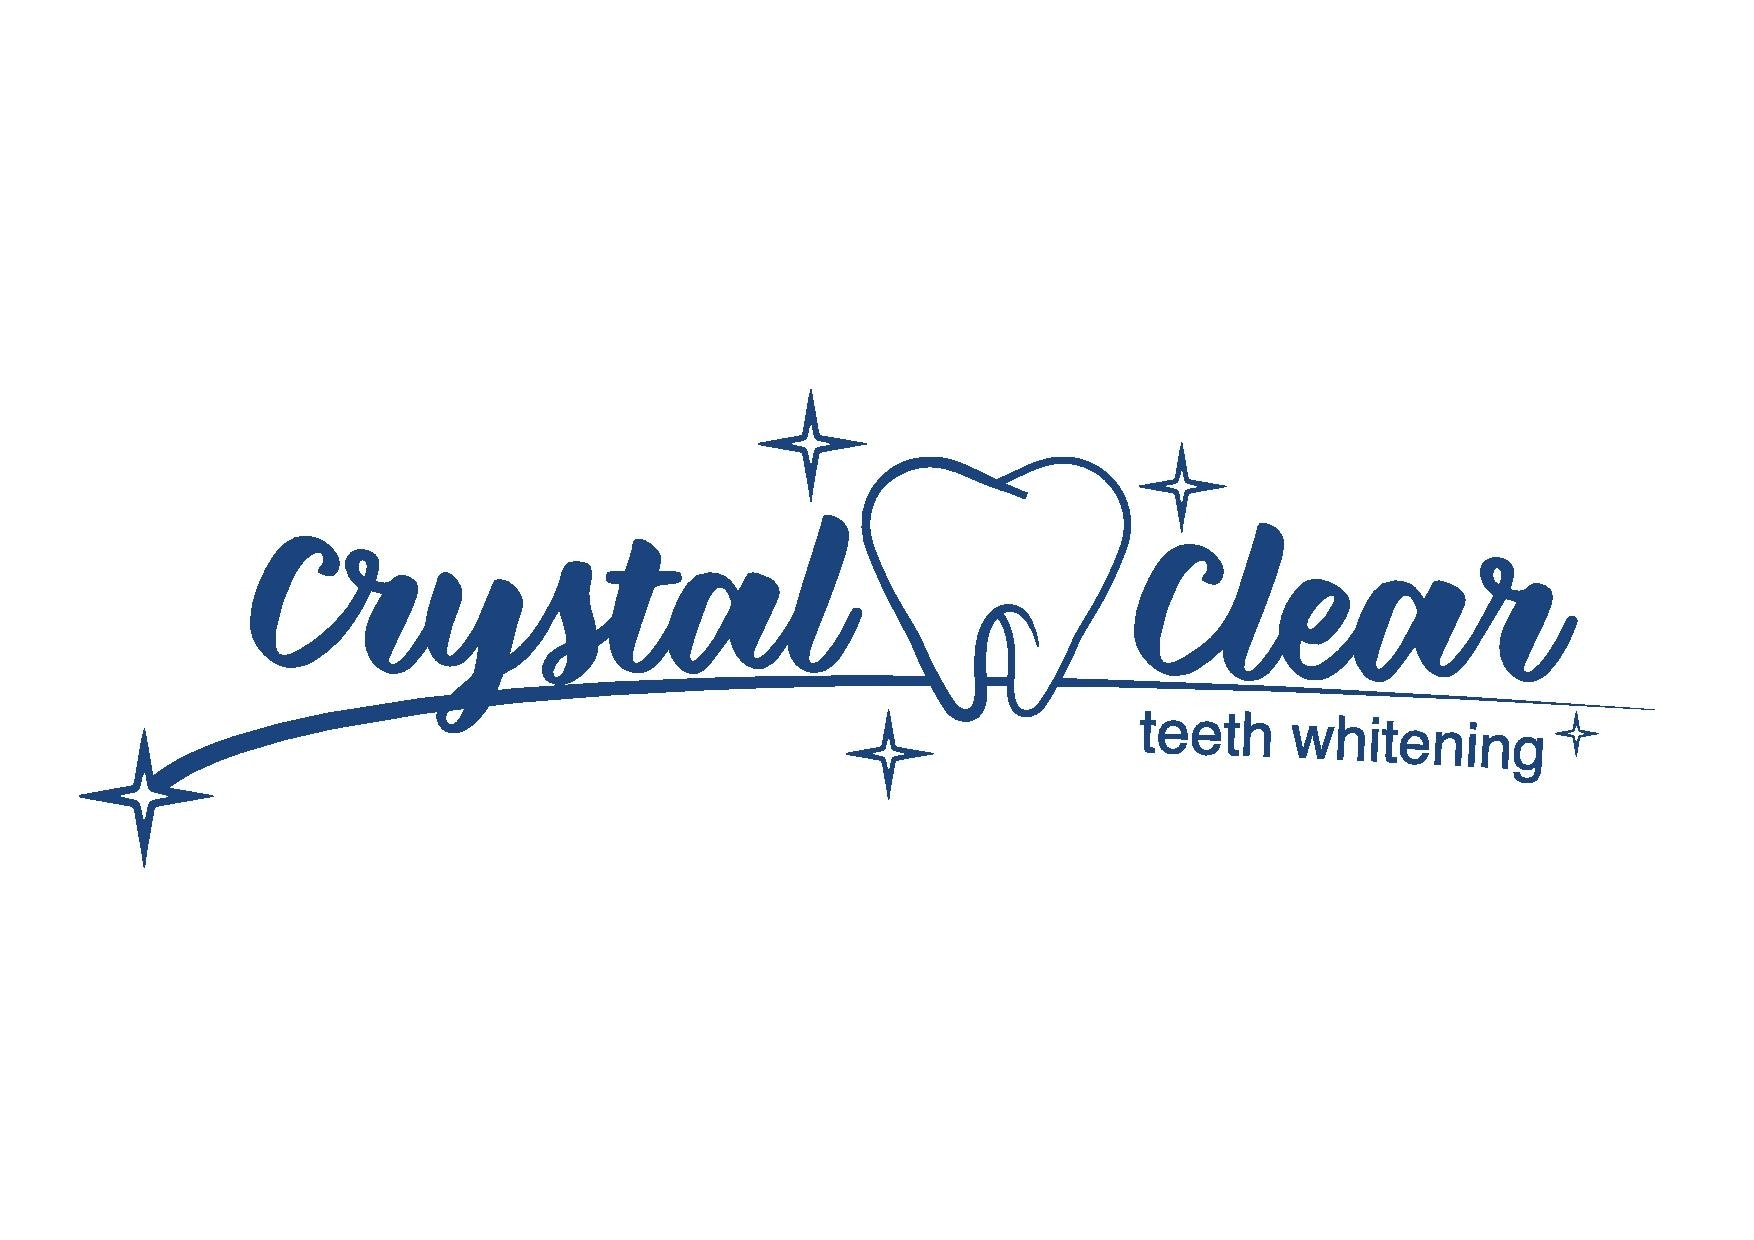 Crystal Clear Teeth Whitening promo code